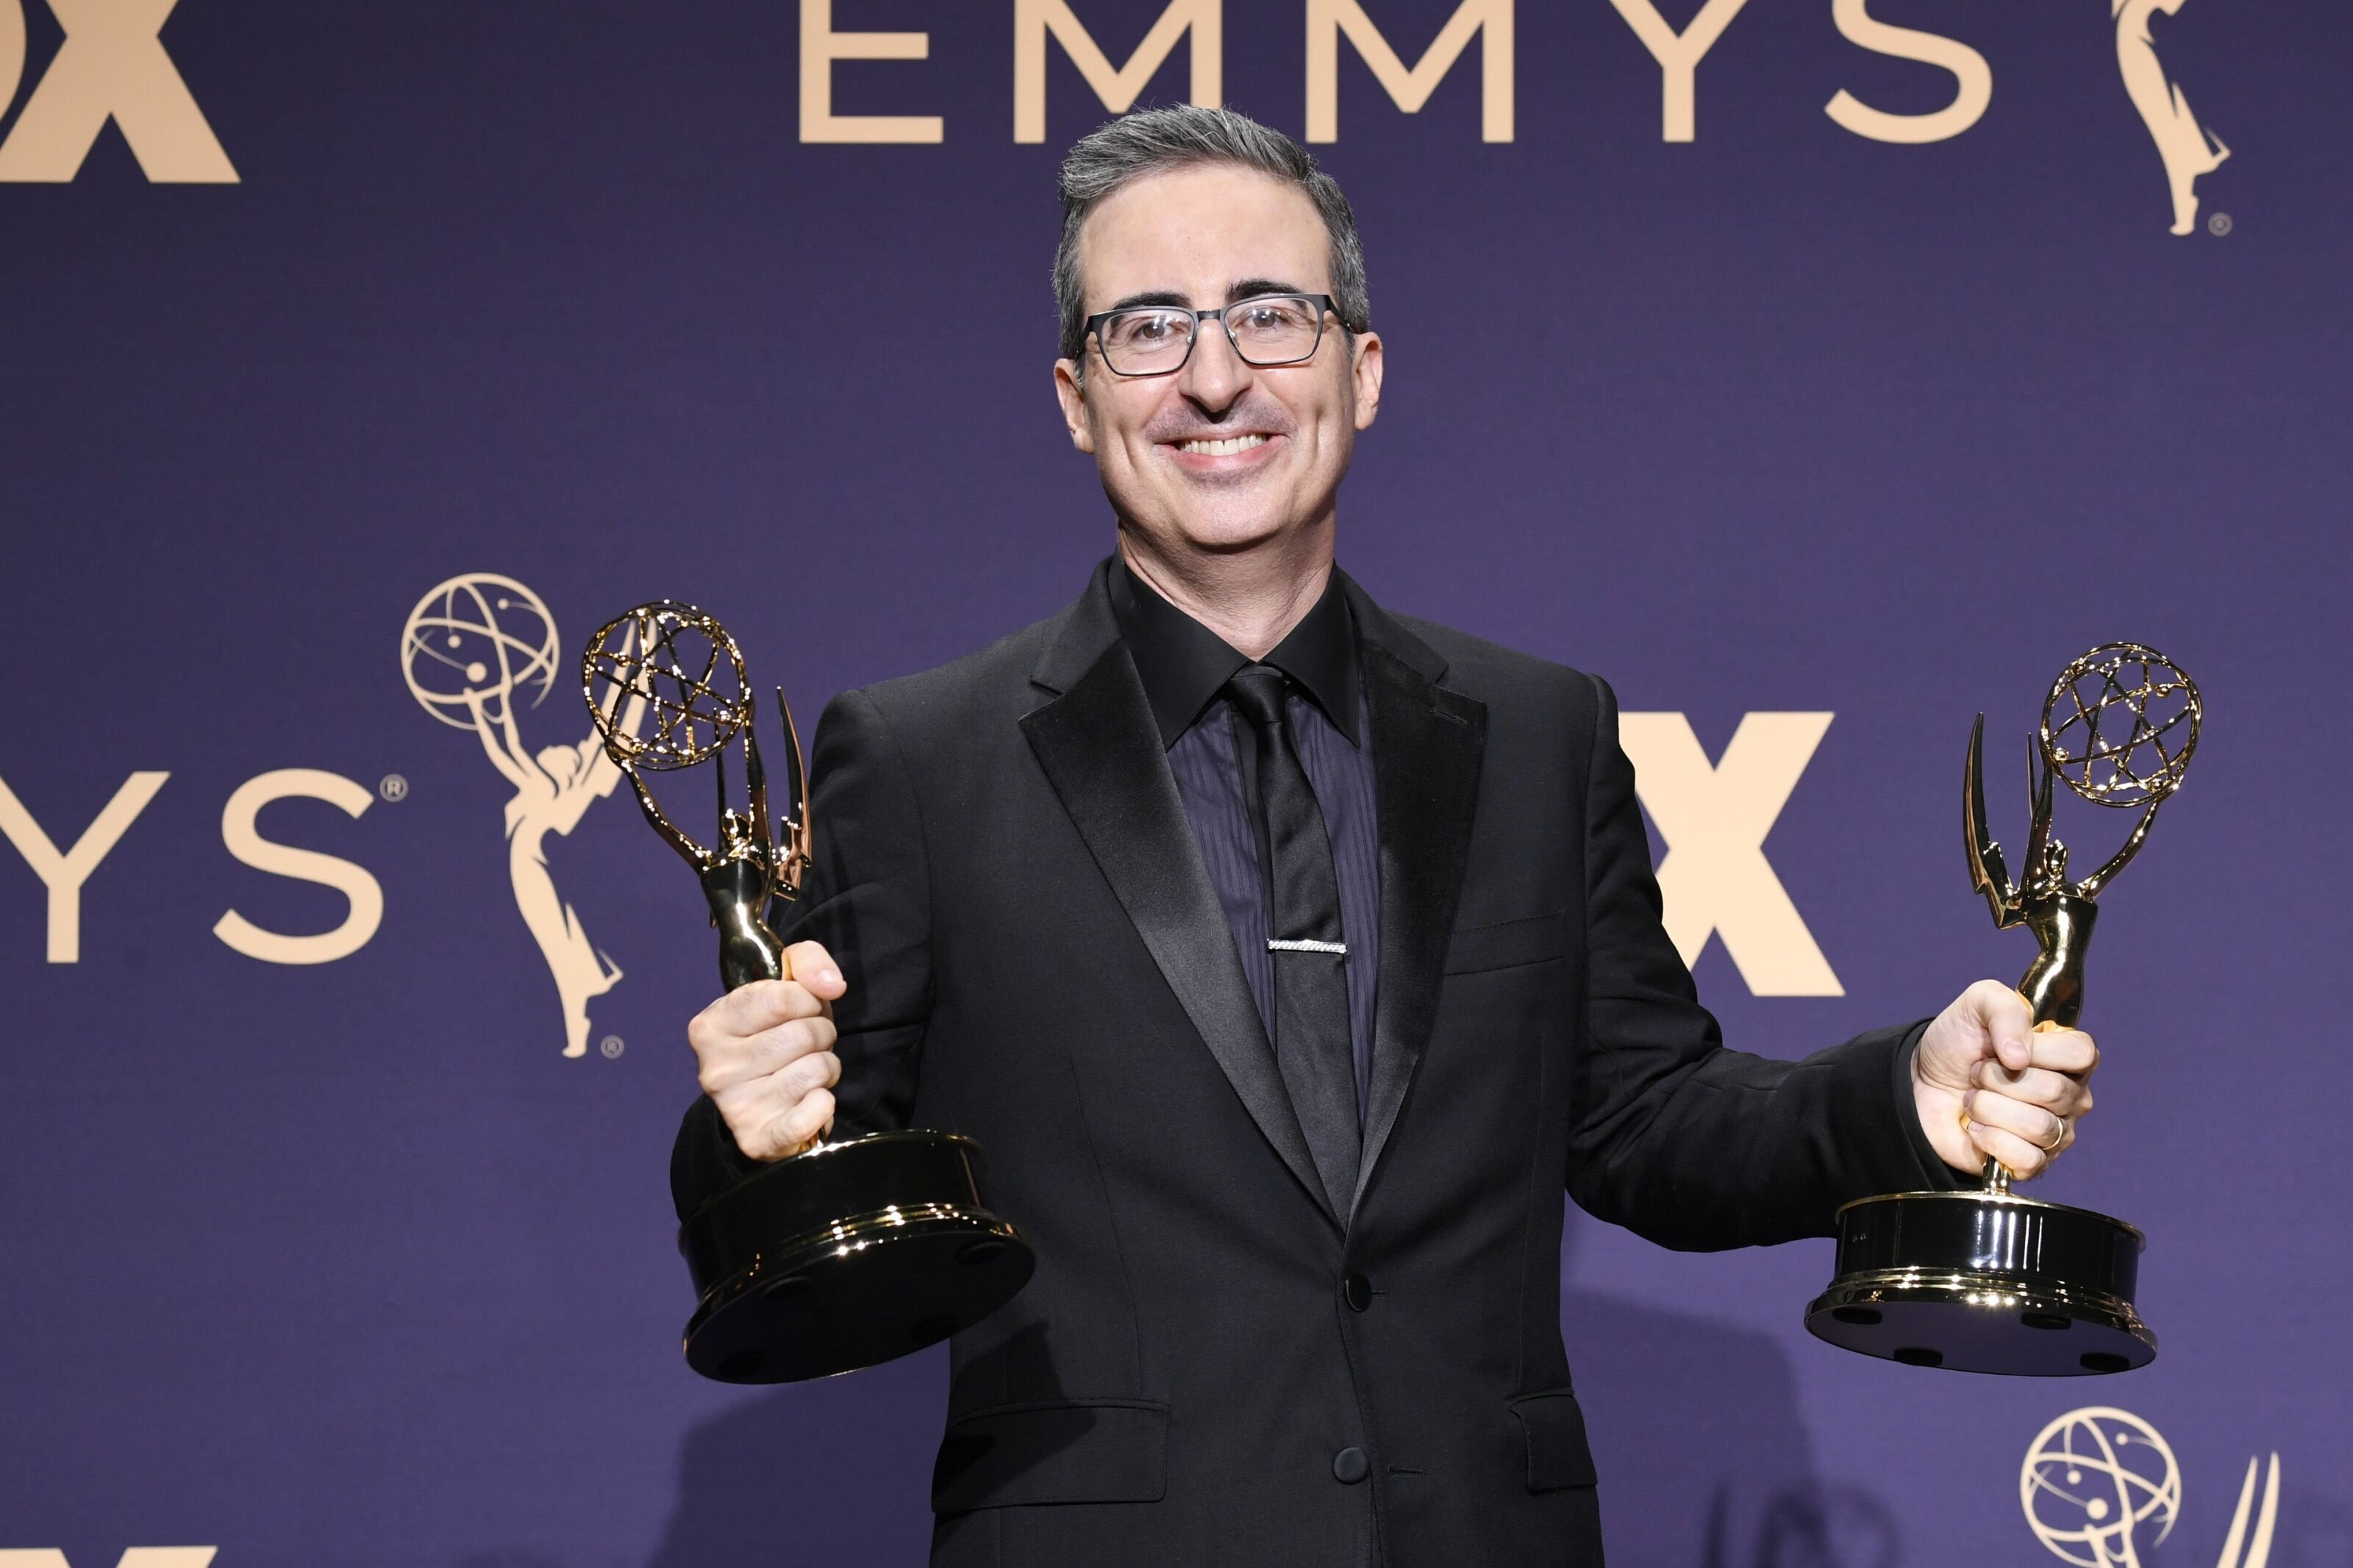 Emmys: Last Week Tonight owns the Outstanding Variety Talk Series category